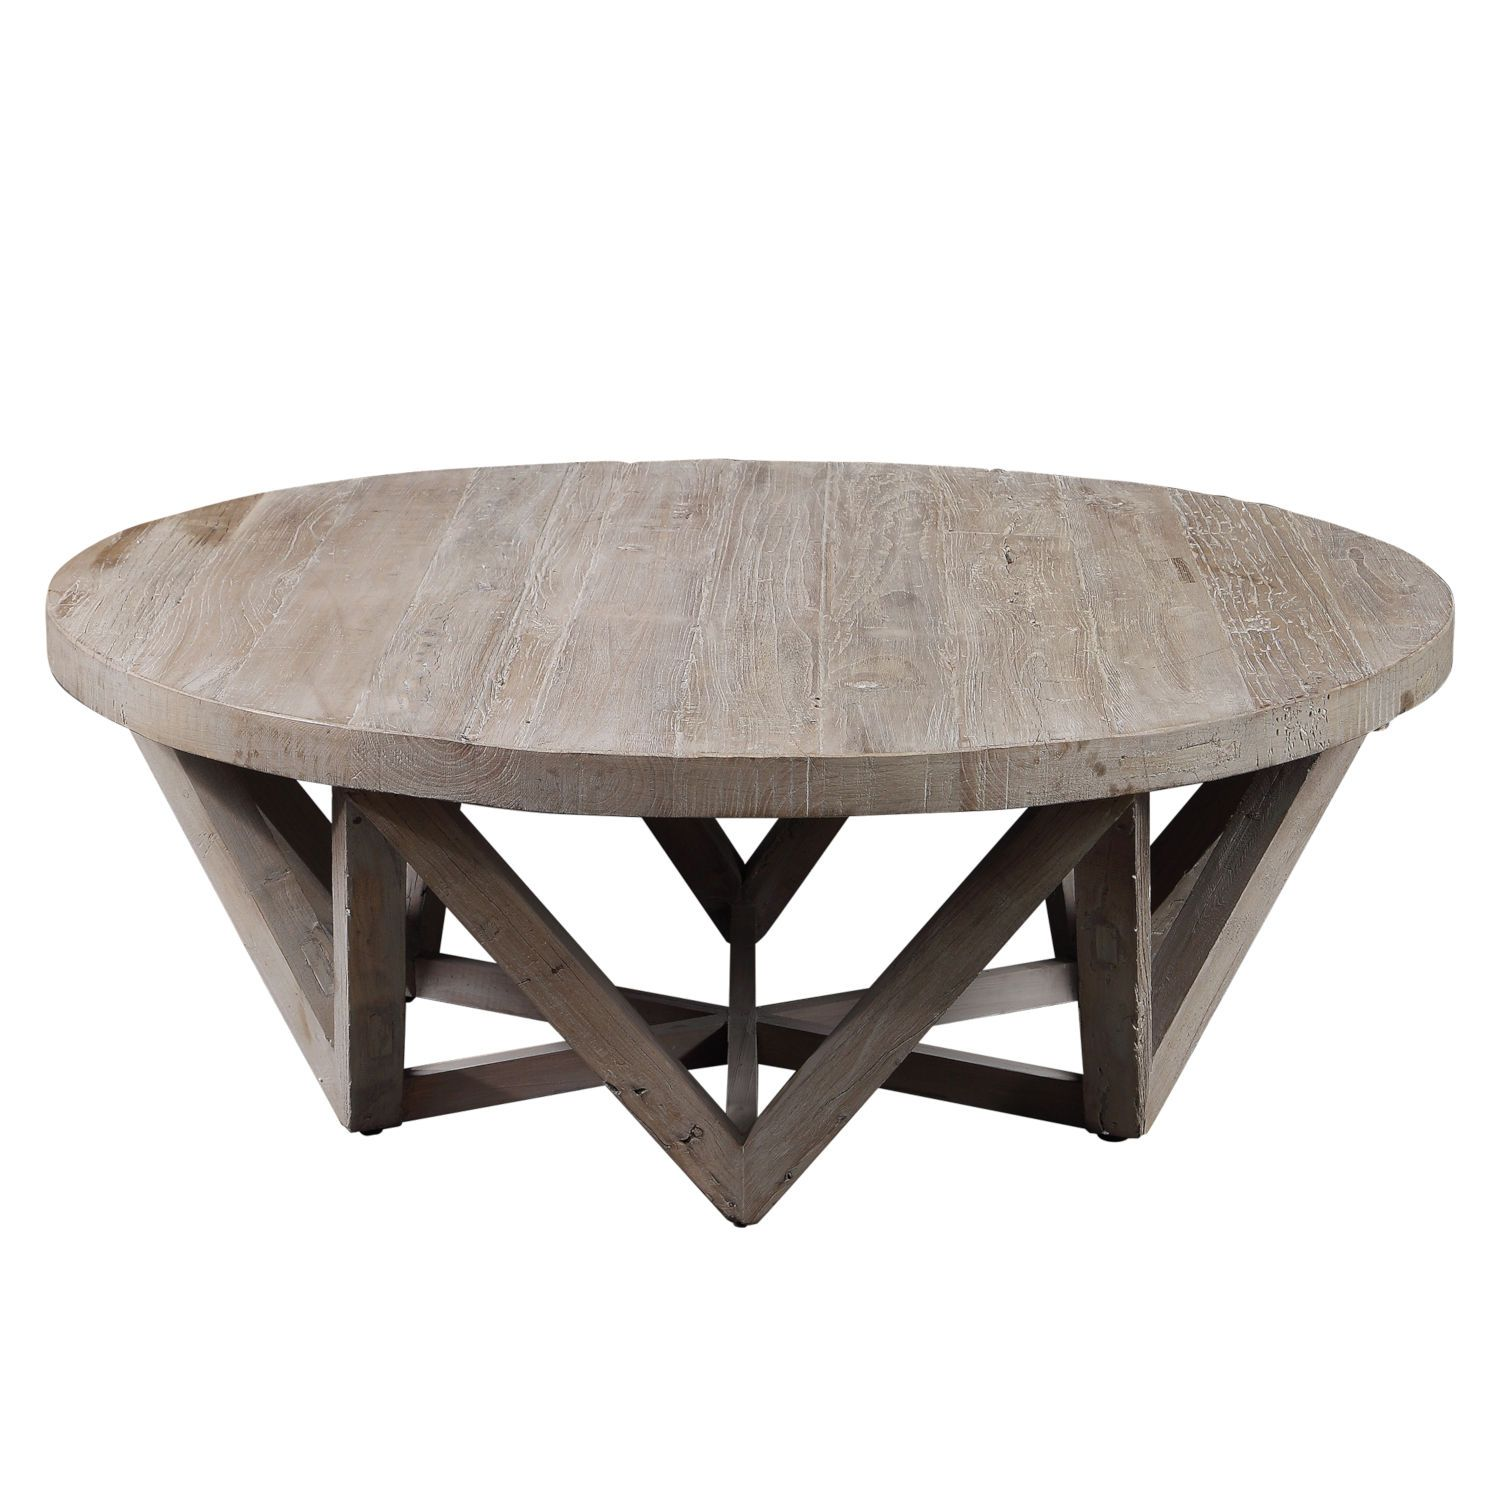 Uttermost Kendry Wood 48 Inch Round Coffee Table 24928 In 2020